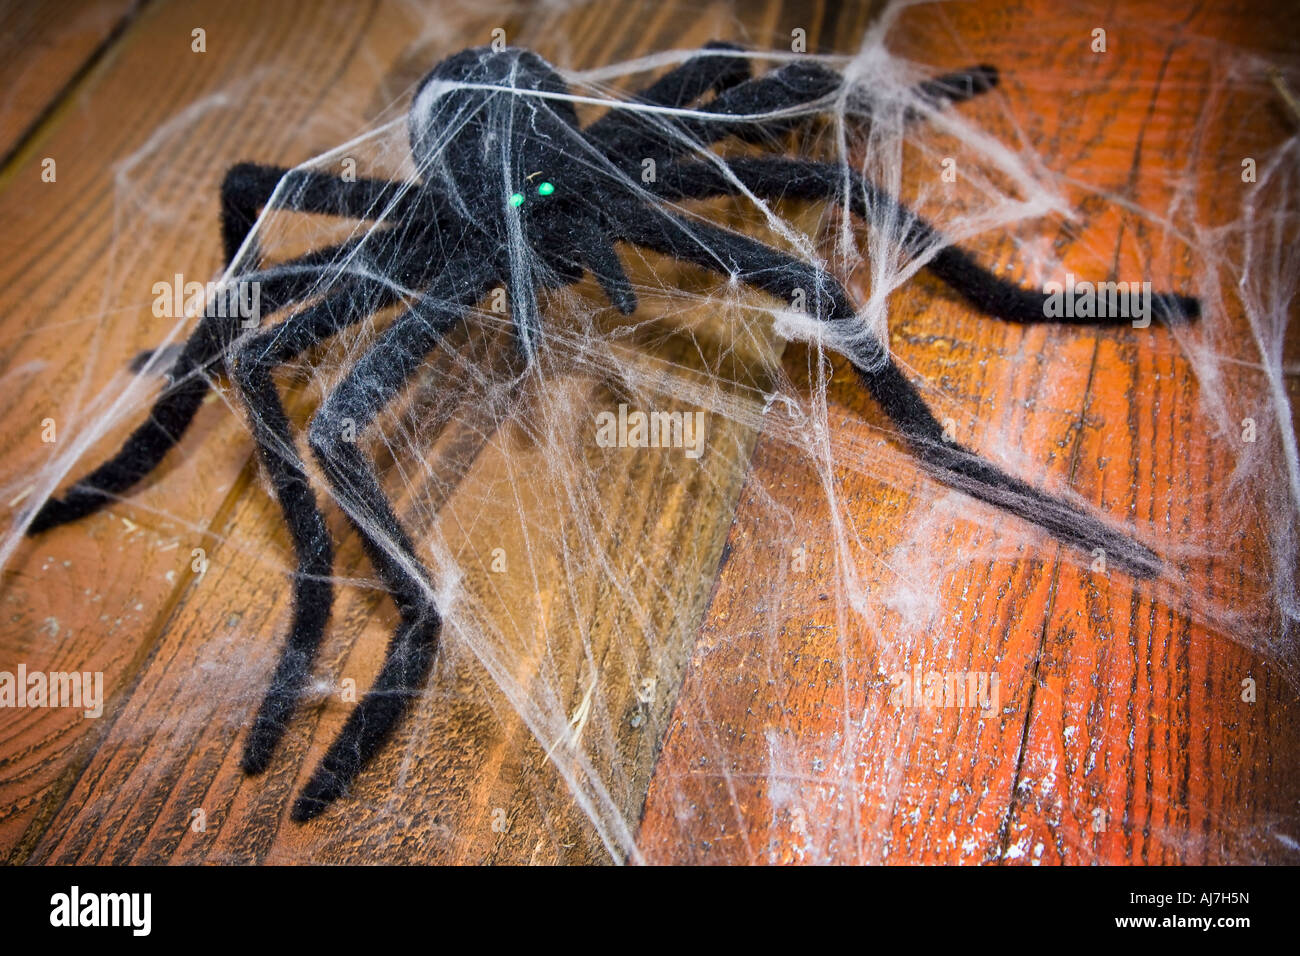 Enormous Halloween spider - Stock Image